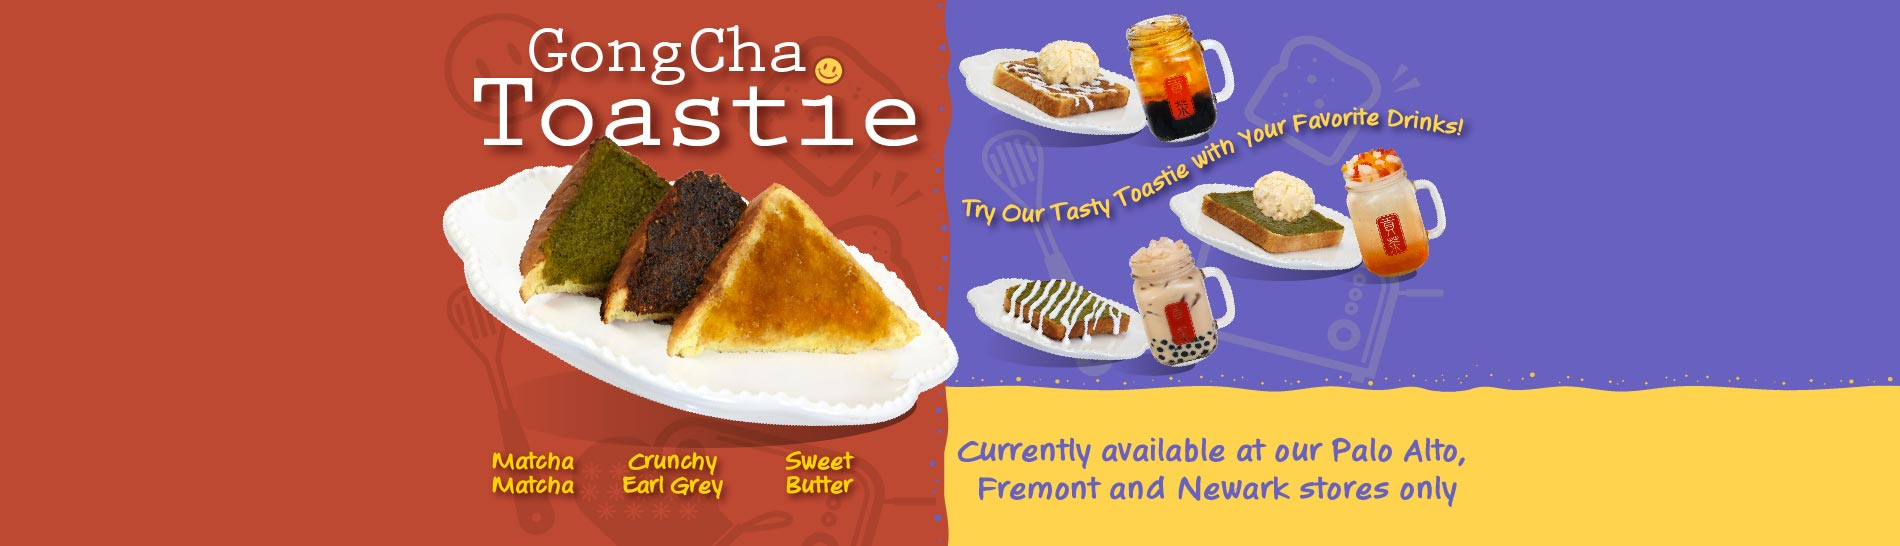 Gong Cha Toastie